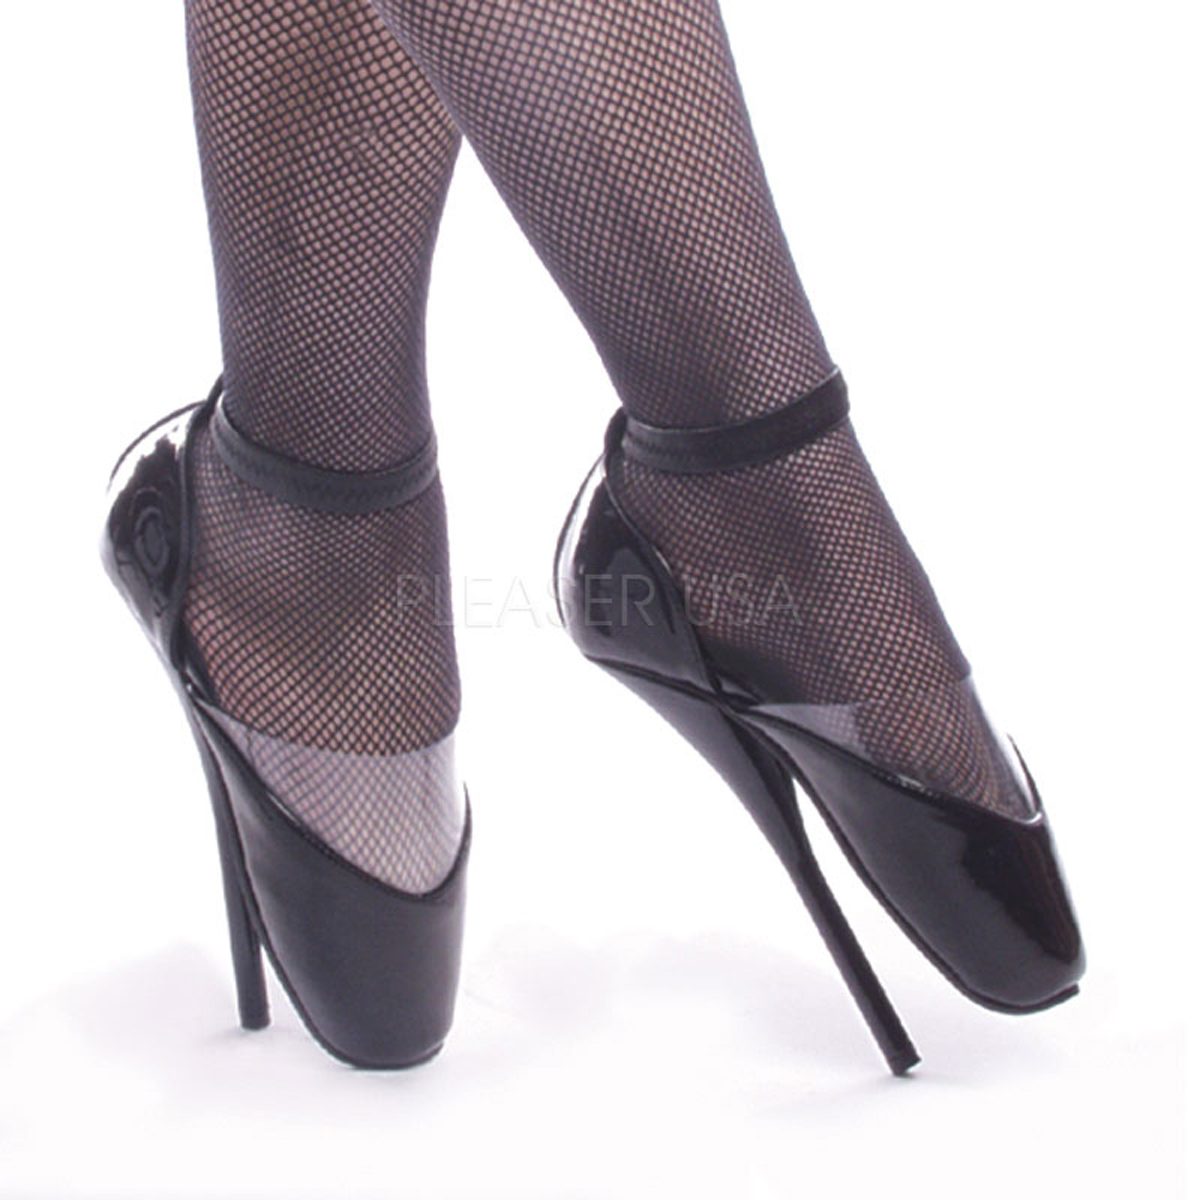 BALLET-12, 7'' Heel Shoes Economical, stylish, and eye-catching shoes